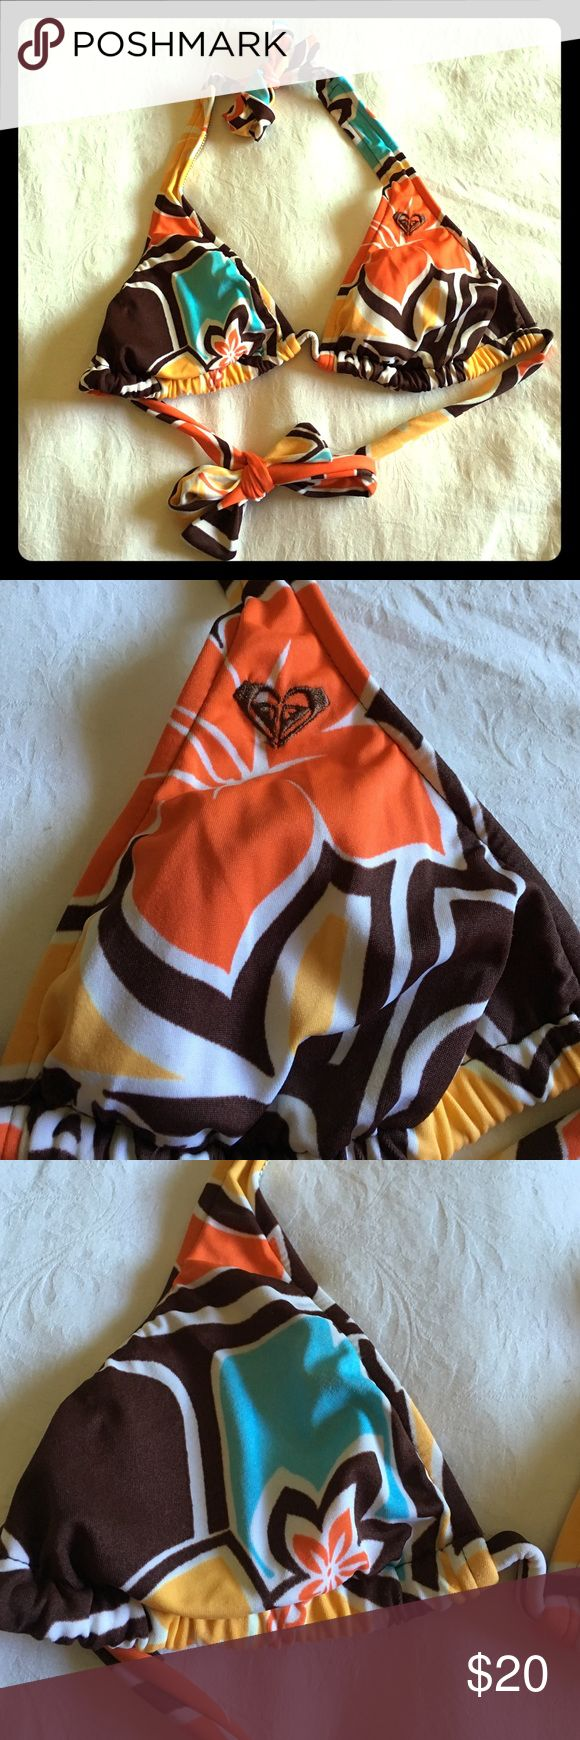 NWOT, Roxy bathing suit top! Super cute, tropical color bathing suit top. Ties around the neck and back with adjustable cups. Size M. Comes from a smoke and pet free home. Roxy Swim